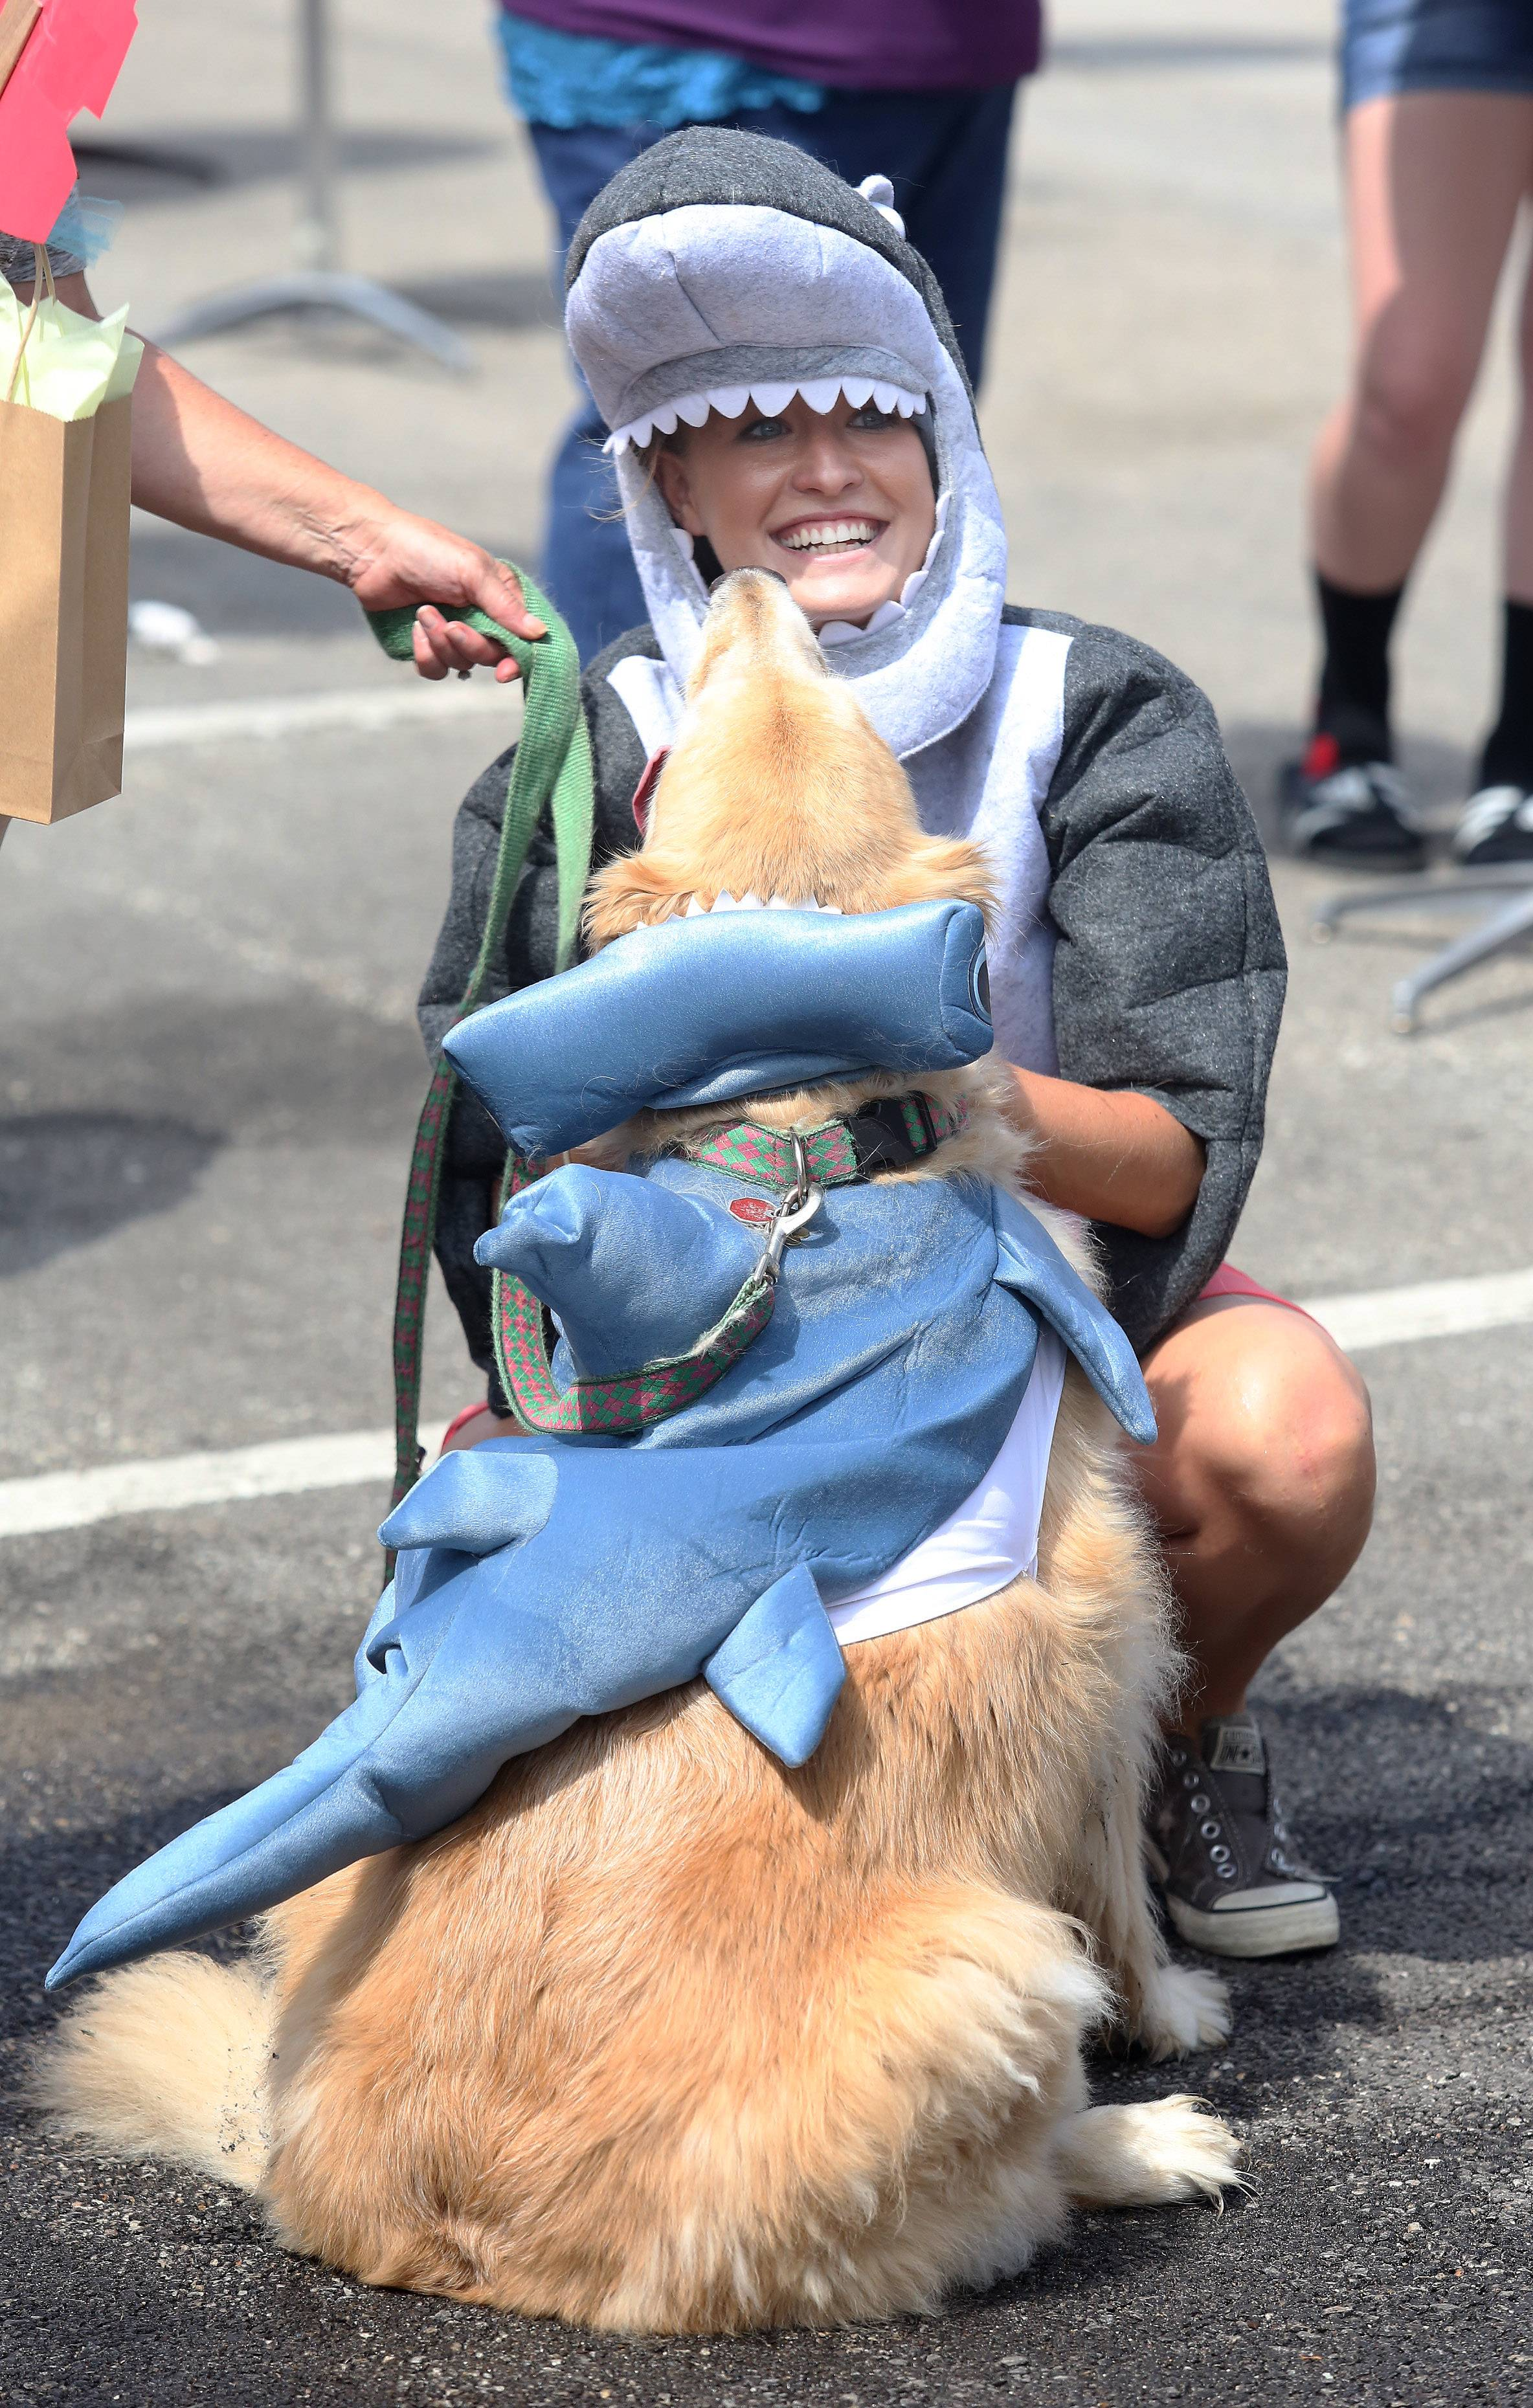 Heather Glaser of Palatine hugs Nellie as they dress as a pair of sharks during the annual Sweet Pea Pet Parade Sunday in downtown Palatine. More than 70 pets participated in the parade Sunday dressed in costumes ranging from sports figures to food items.